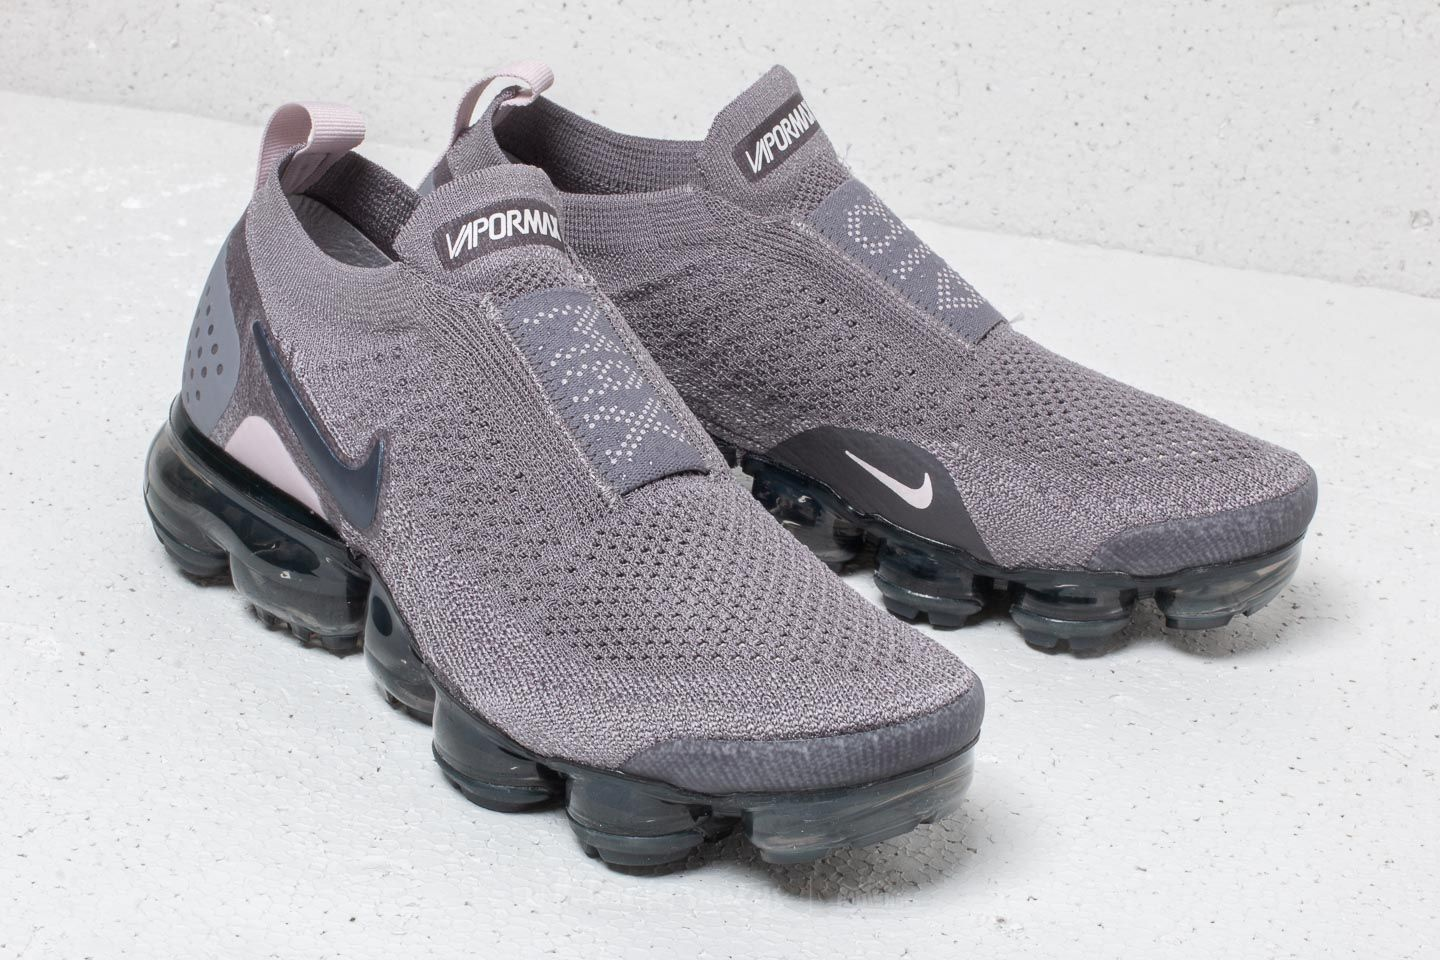 Nike Wmns Air Vapormax Flyknit Moc 2 Gunsmoke  Blackened Blue at a great  price 209 32258ace1a7b